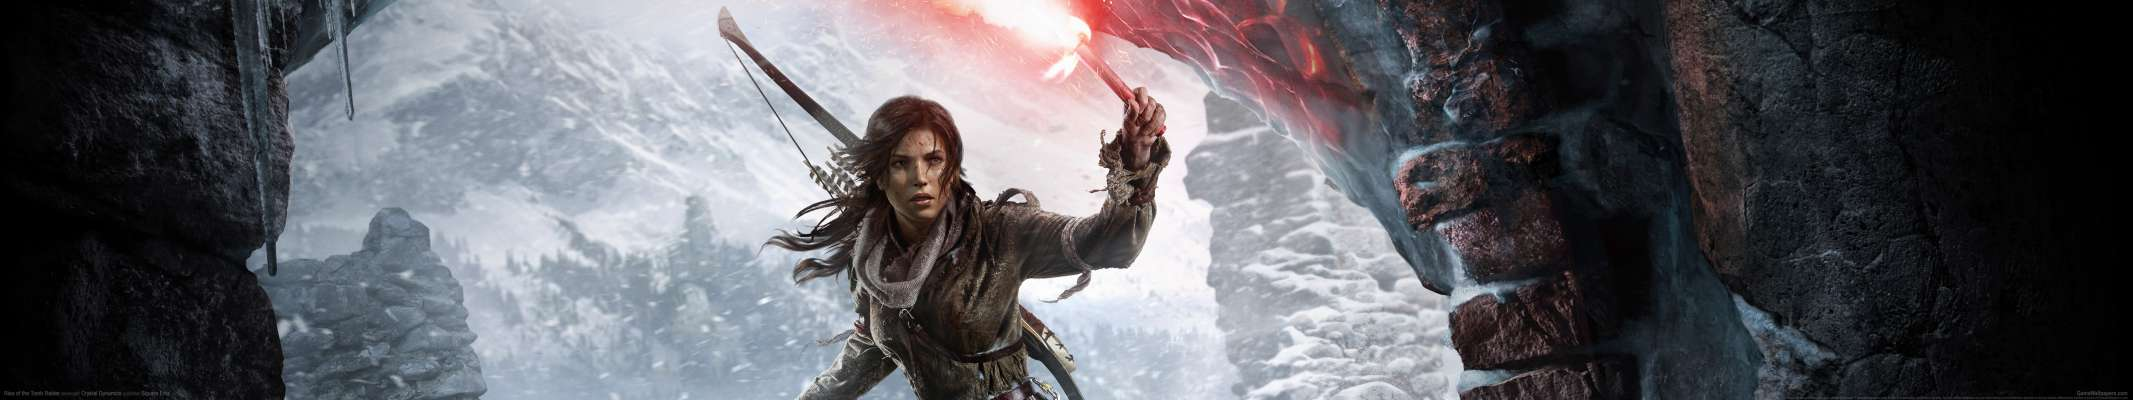 Rise of the Tomb Raider triple screen fond d'écran